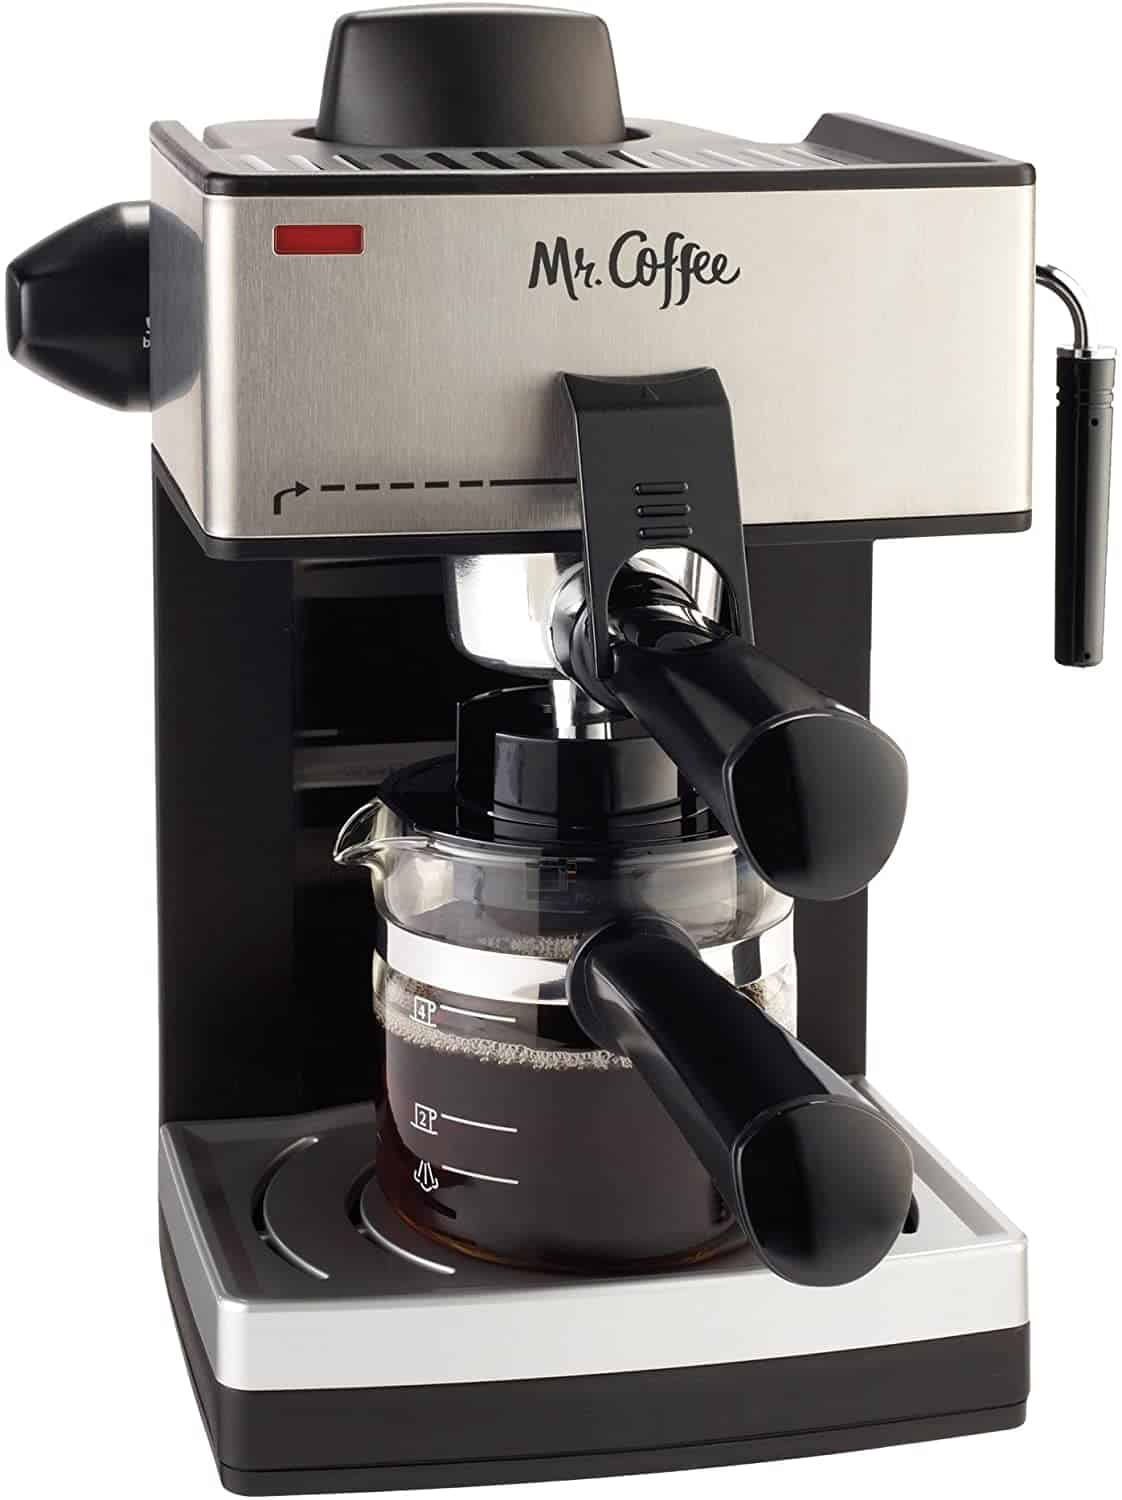 Mr. Coffee 4-Cup Espresso System